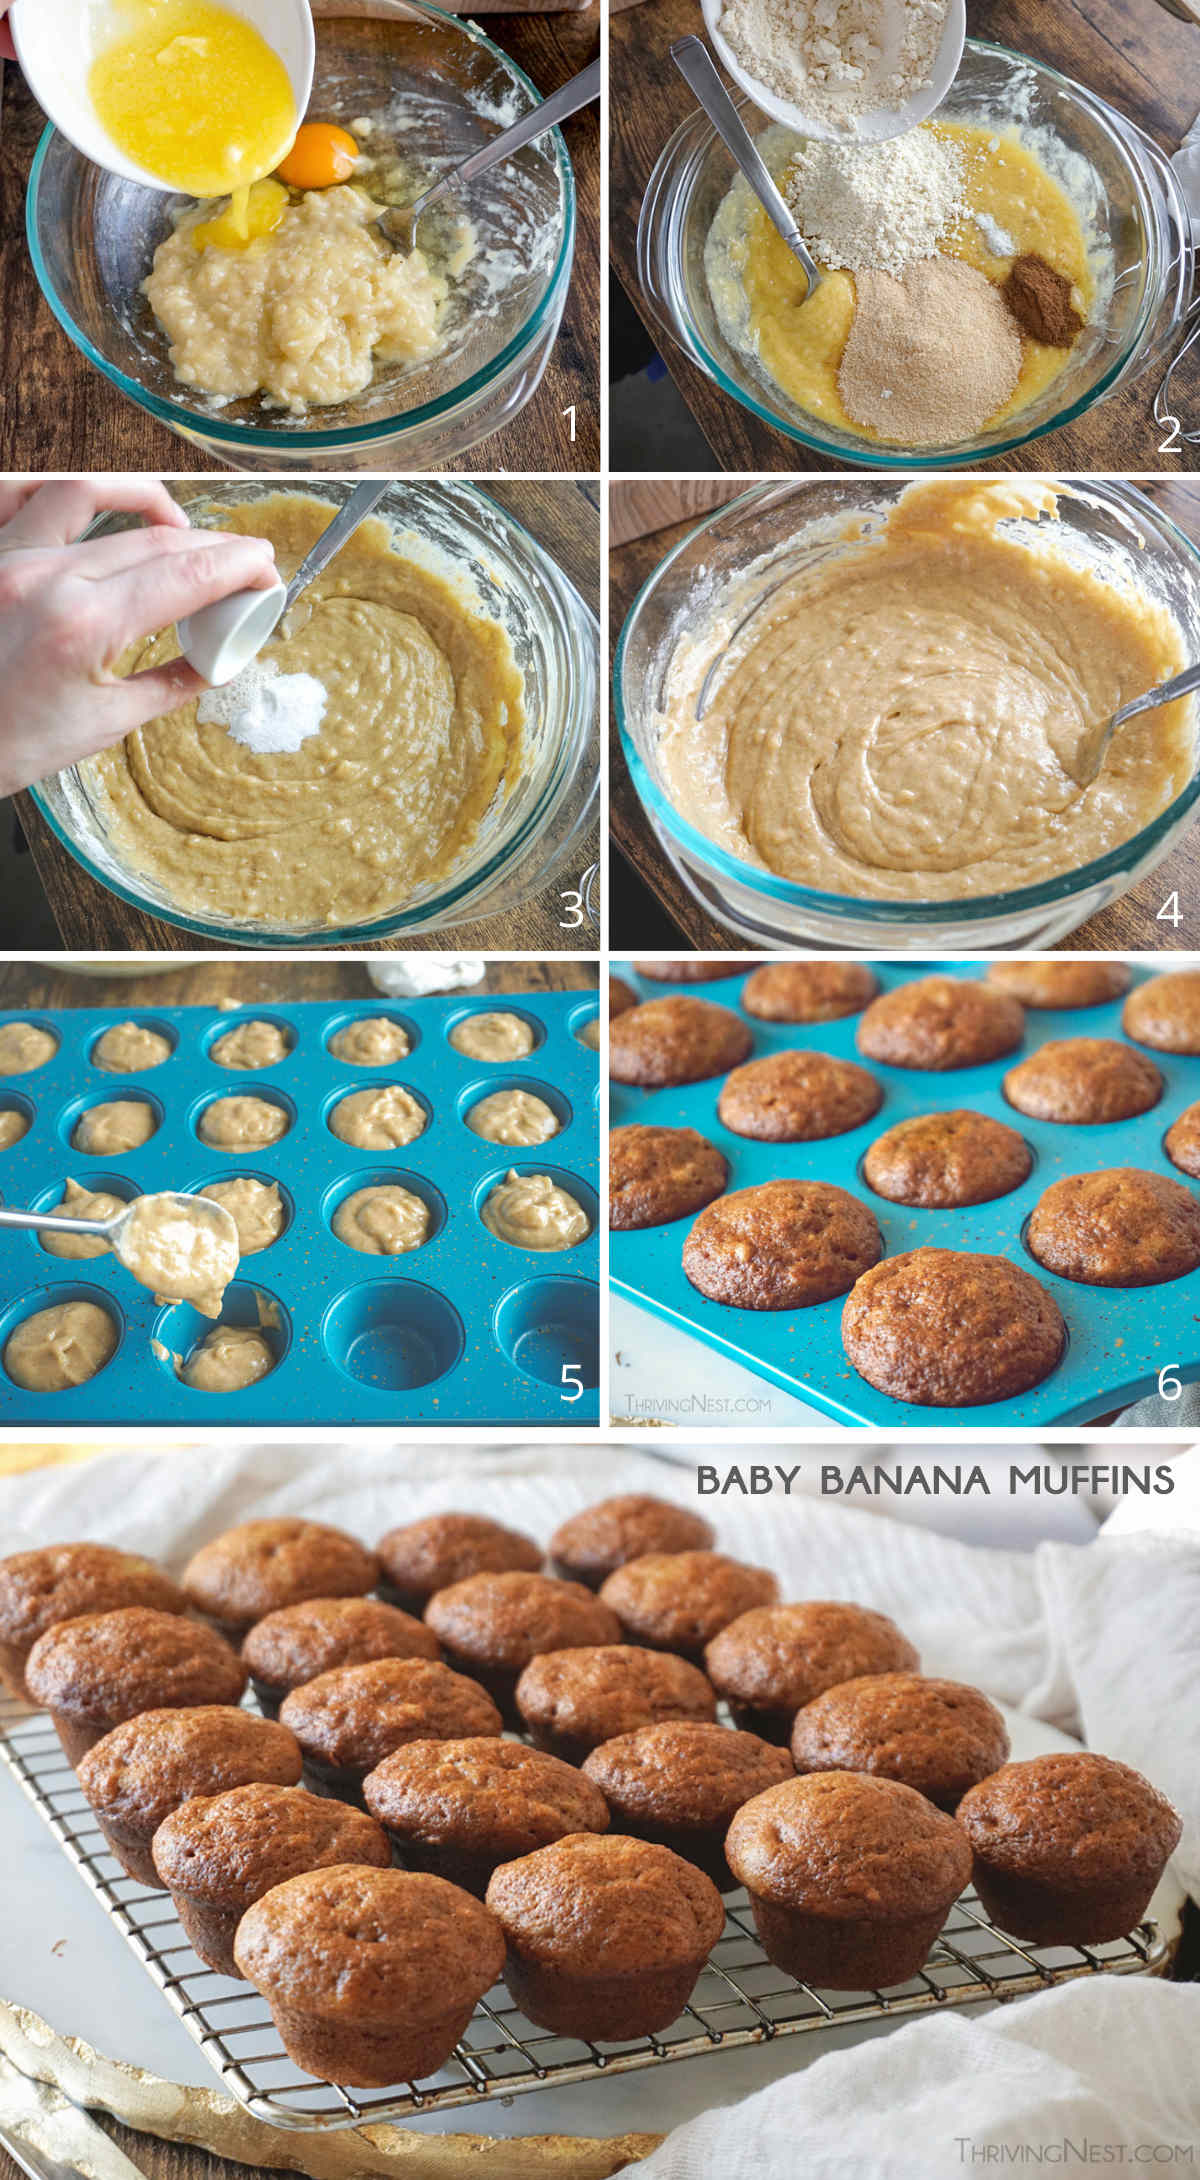 How to make baby banana muffins from scratch with healthy ingredients for babies 6 months and up.